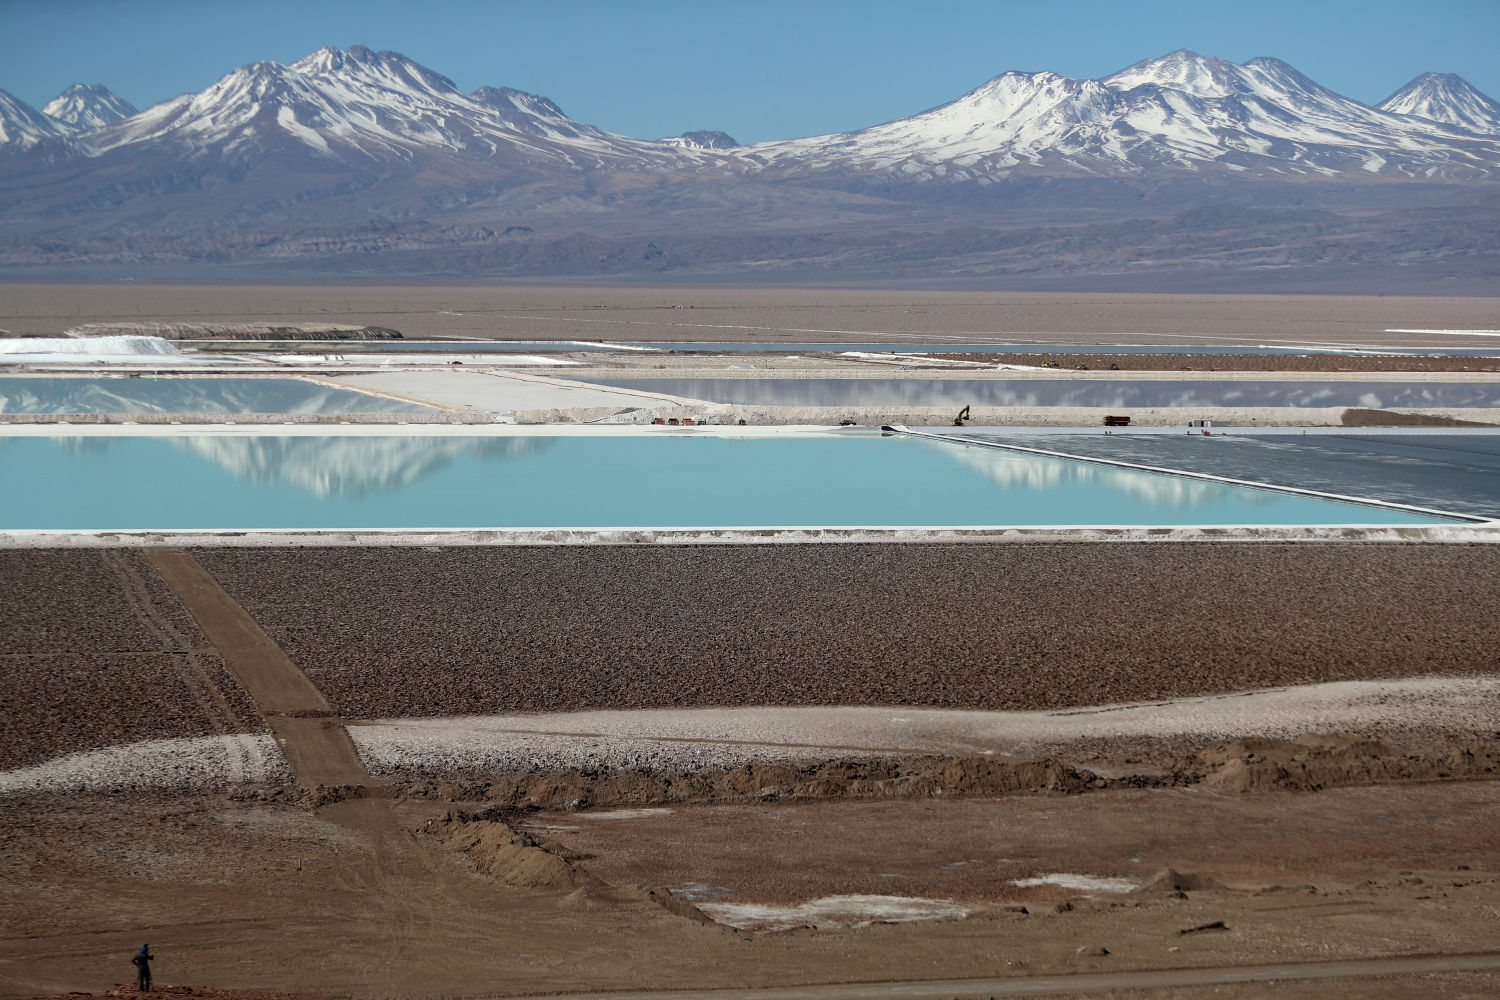 China salt lake project puts lithium production under spotlight